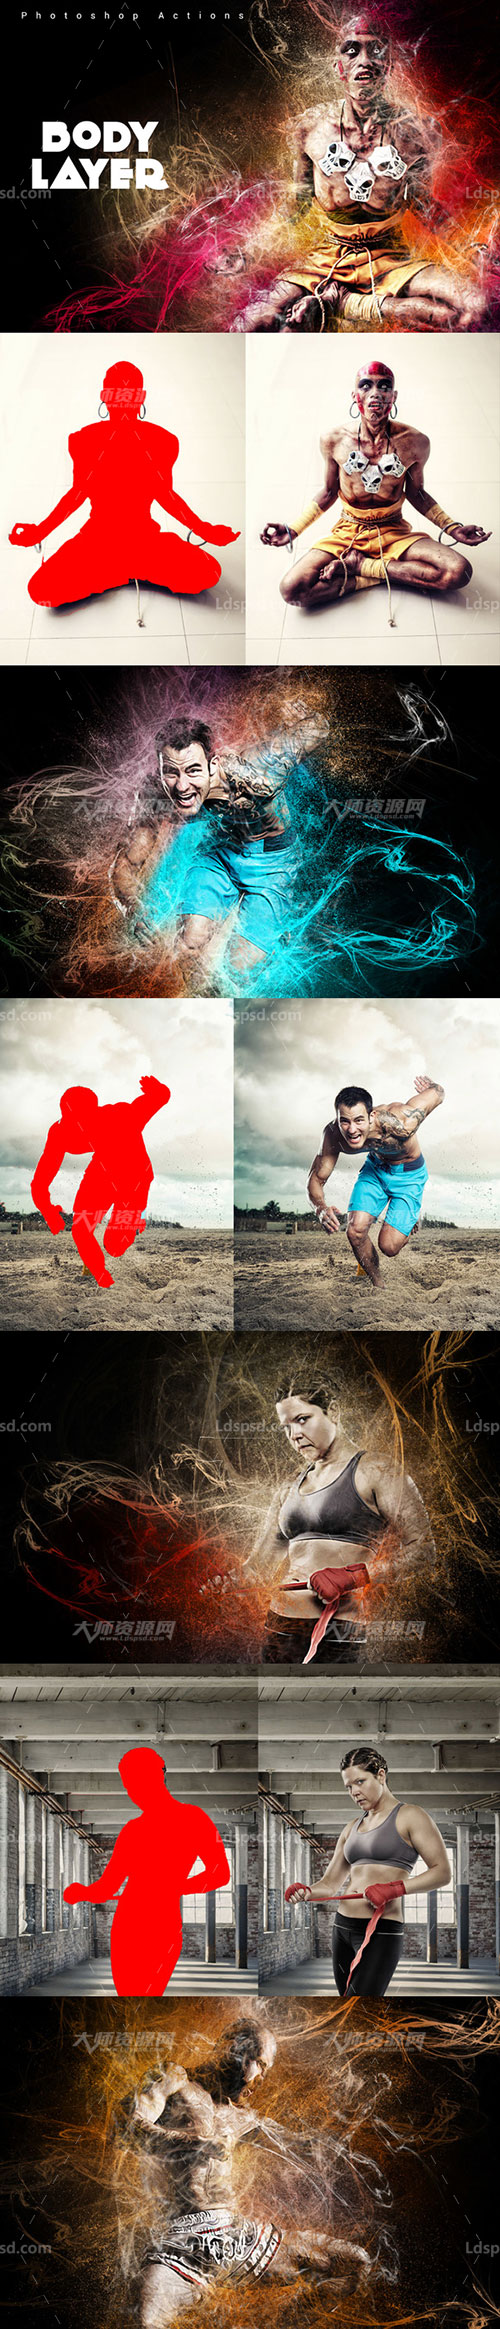 Body Layers Photoshop Actions,极品PS动作-体能爆满